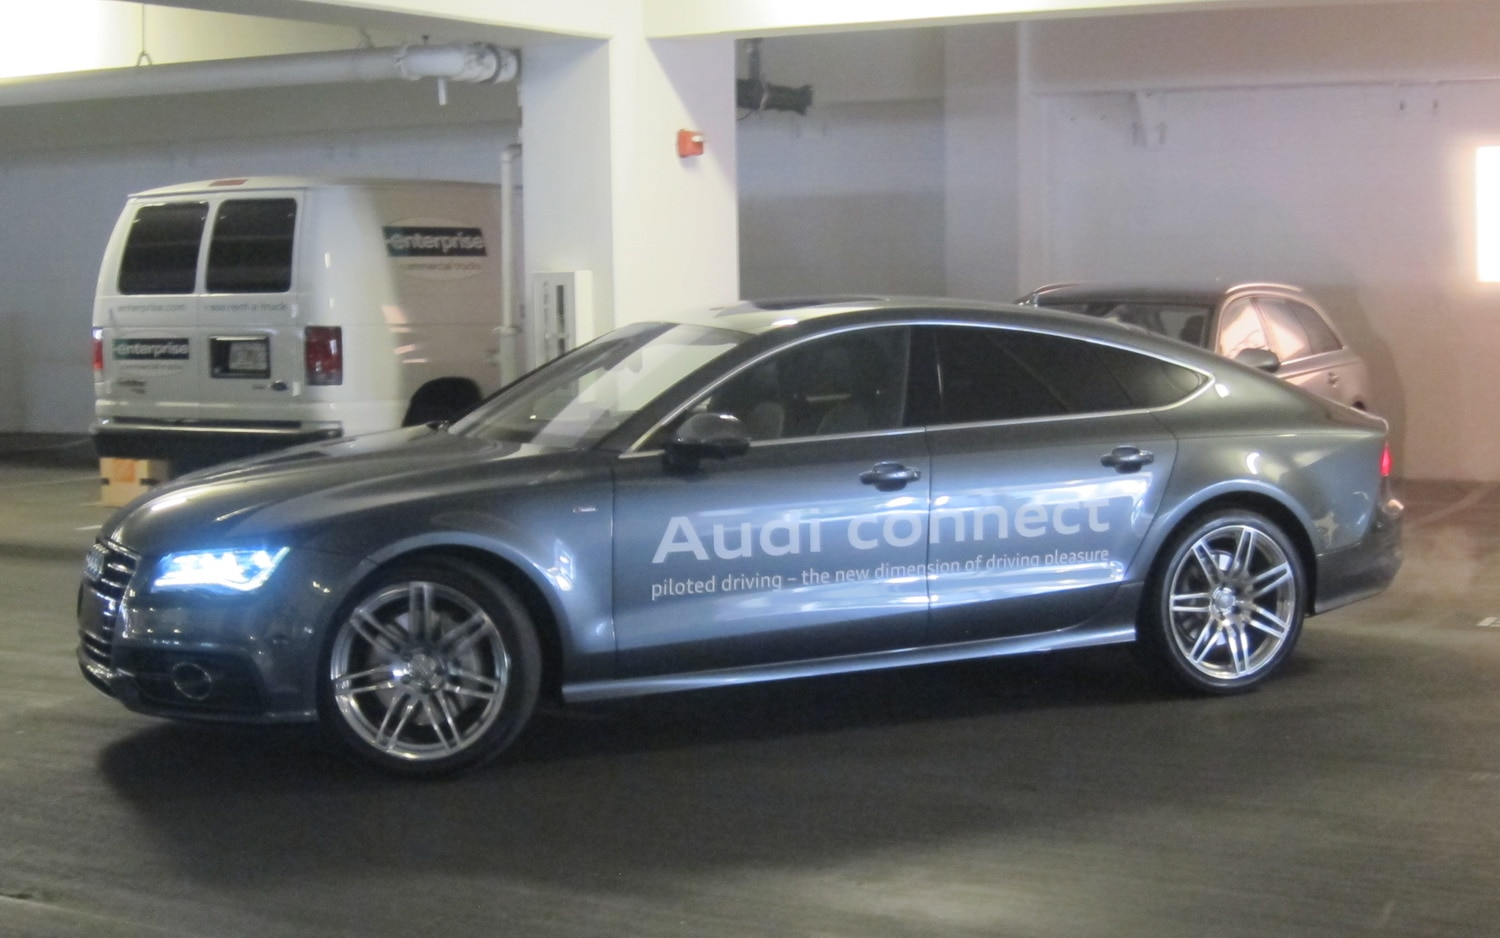 Audi Piloted Driving Demo 11